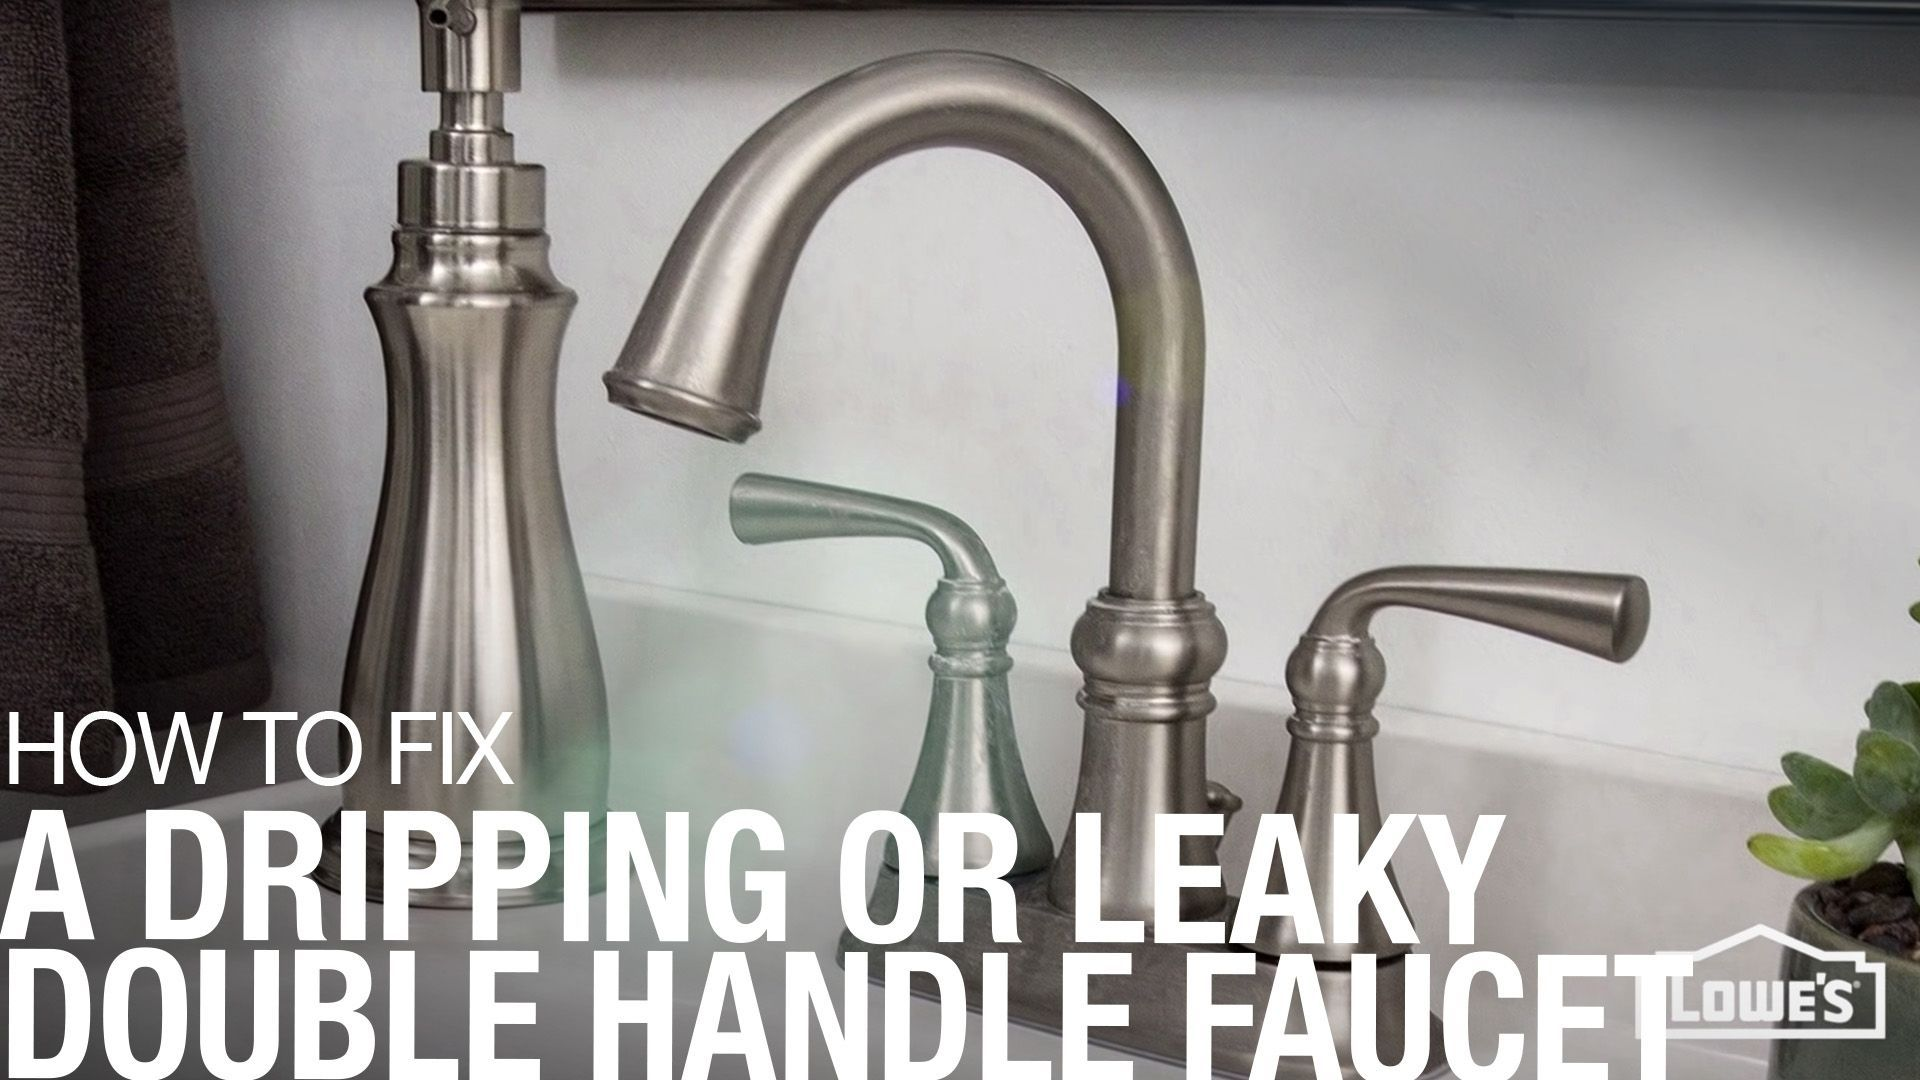 How To Fix A Leaky Faucet Kitchen Faucet Repair Moen Kitchen Faucet Faucet Repair